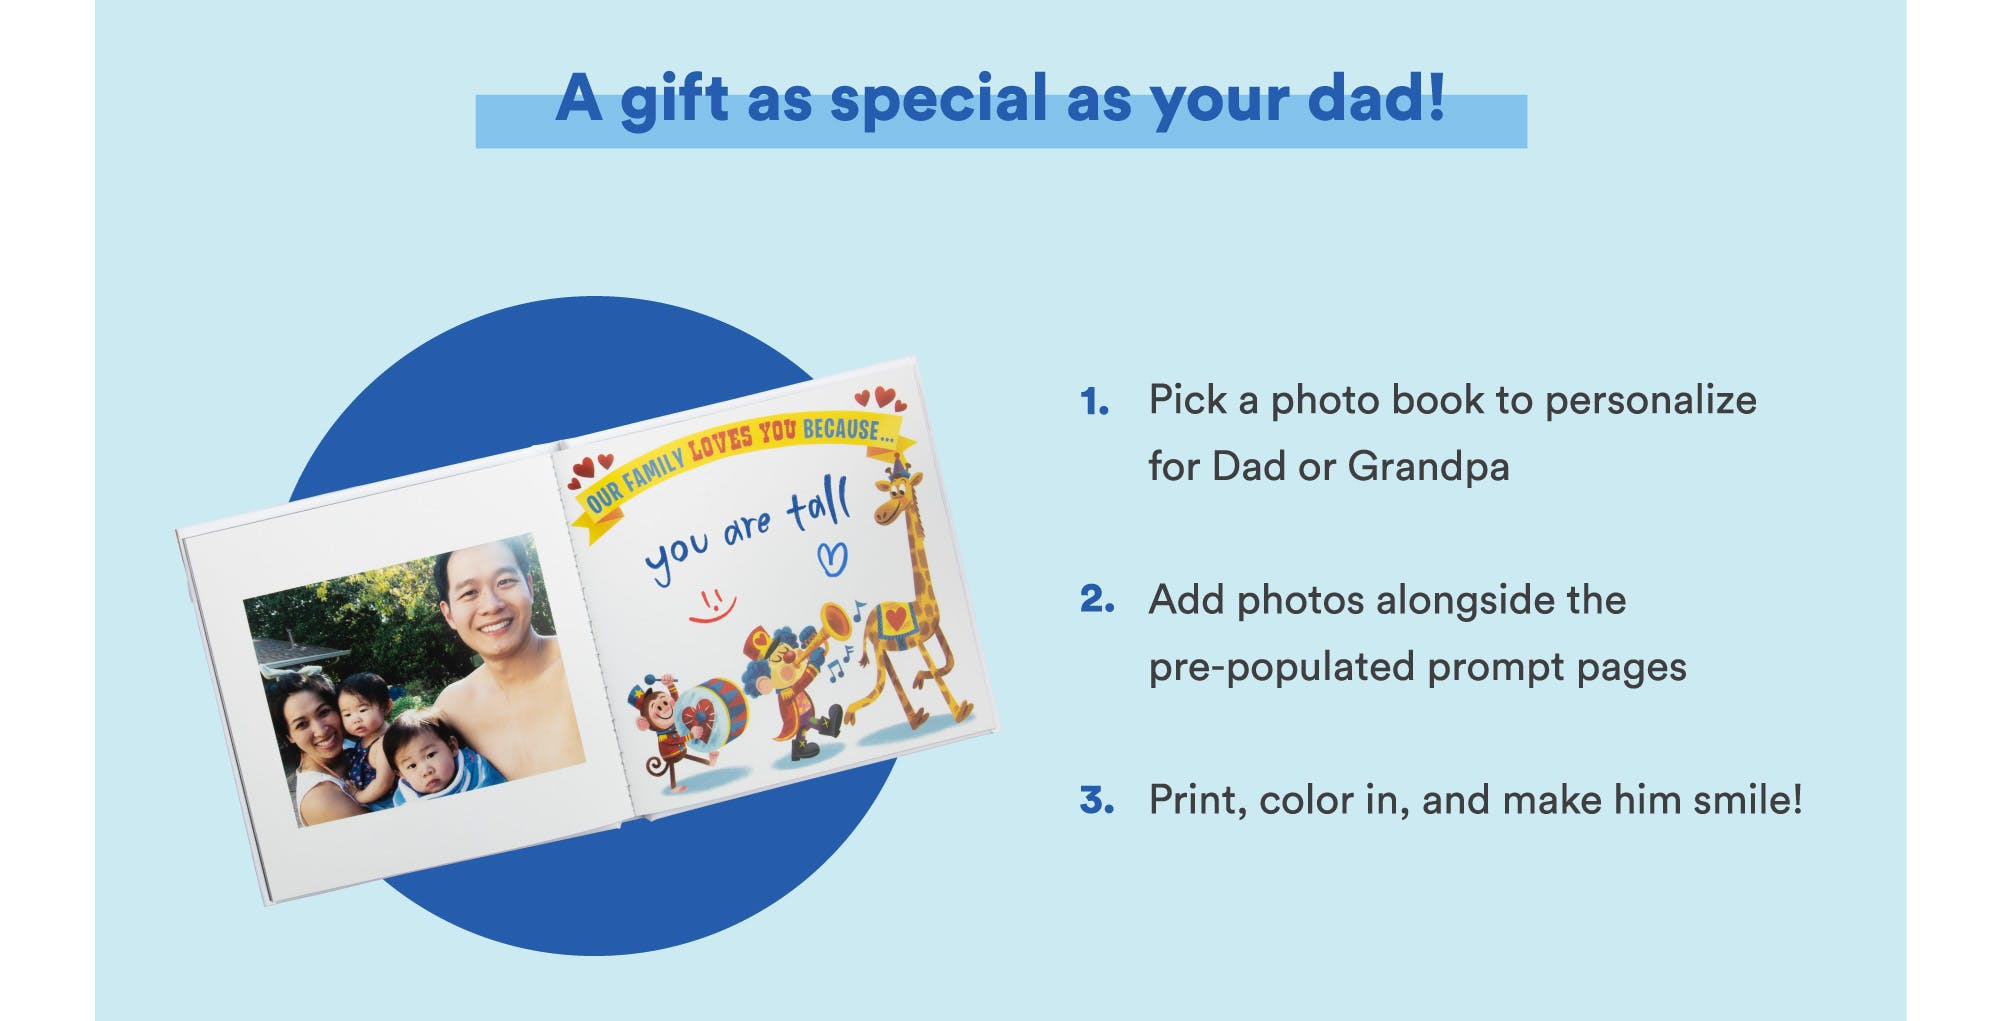 A gift as special as your dad or grandpa!